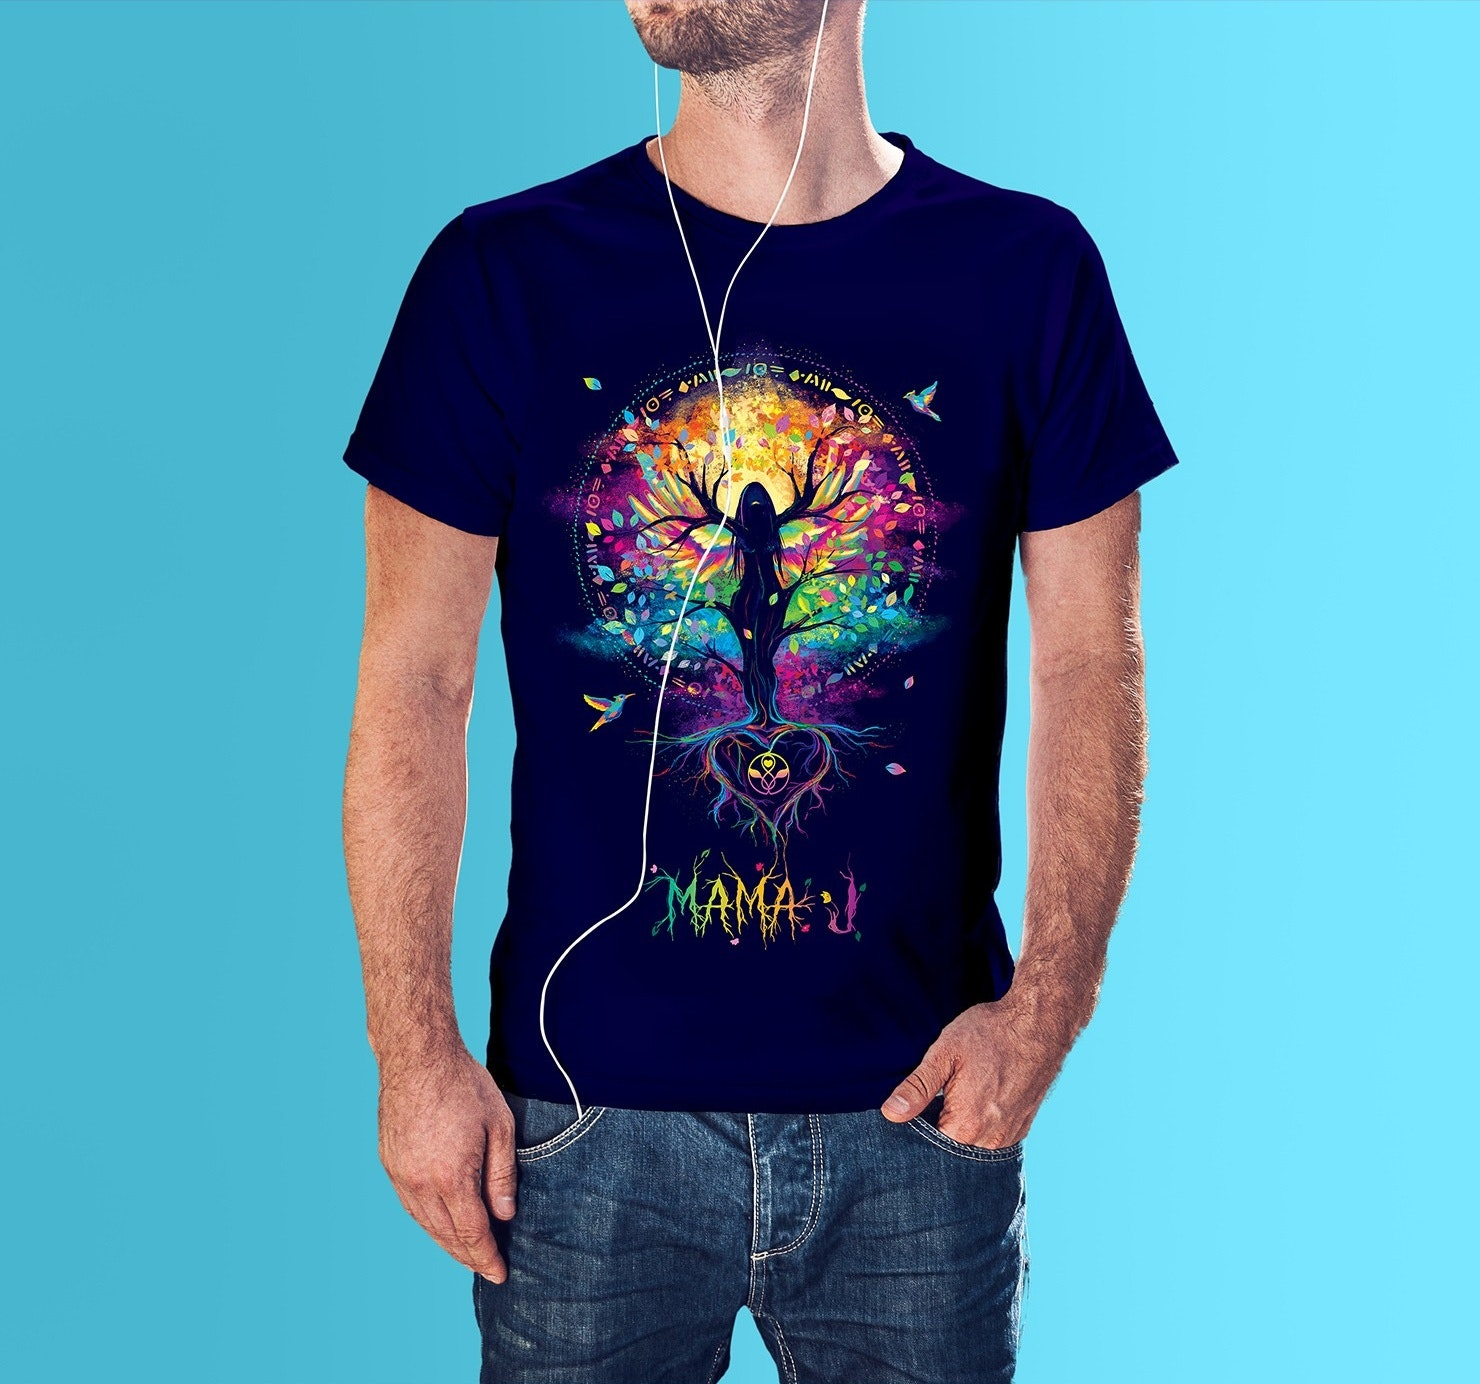 Berühmt The 10 best freelance t-shirt designers for hire in 2018 - 99designs #BH_88